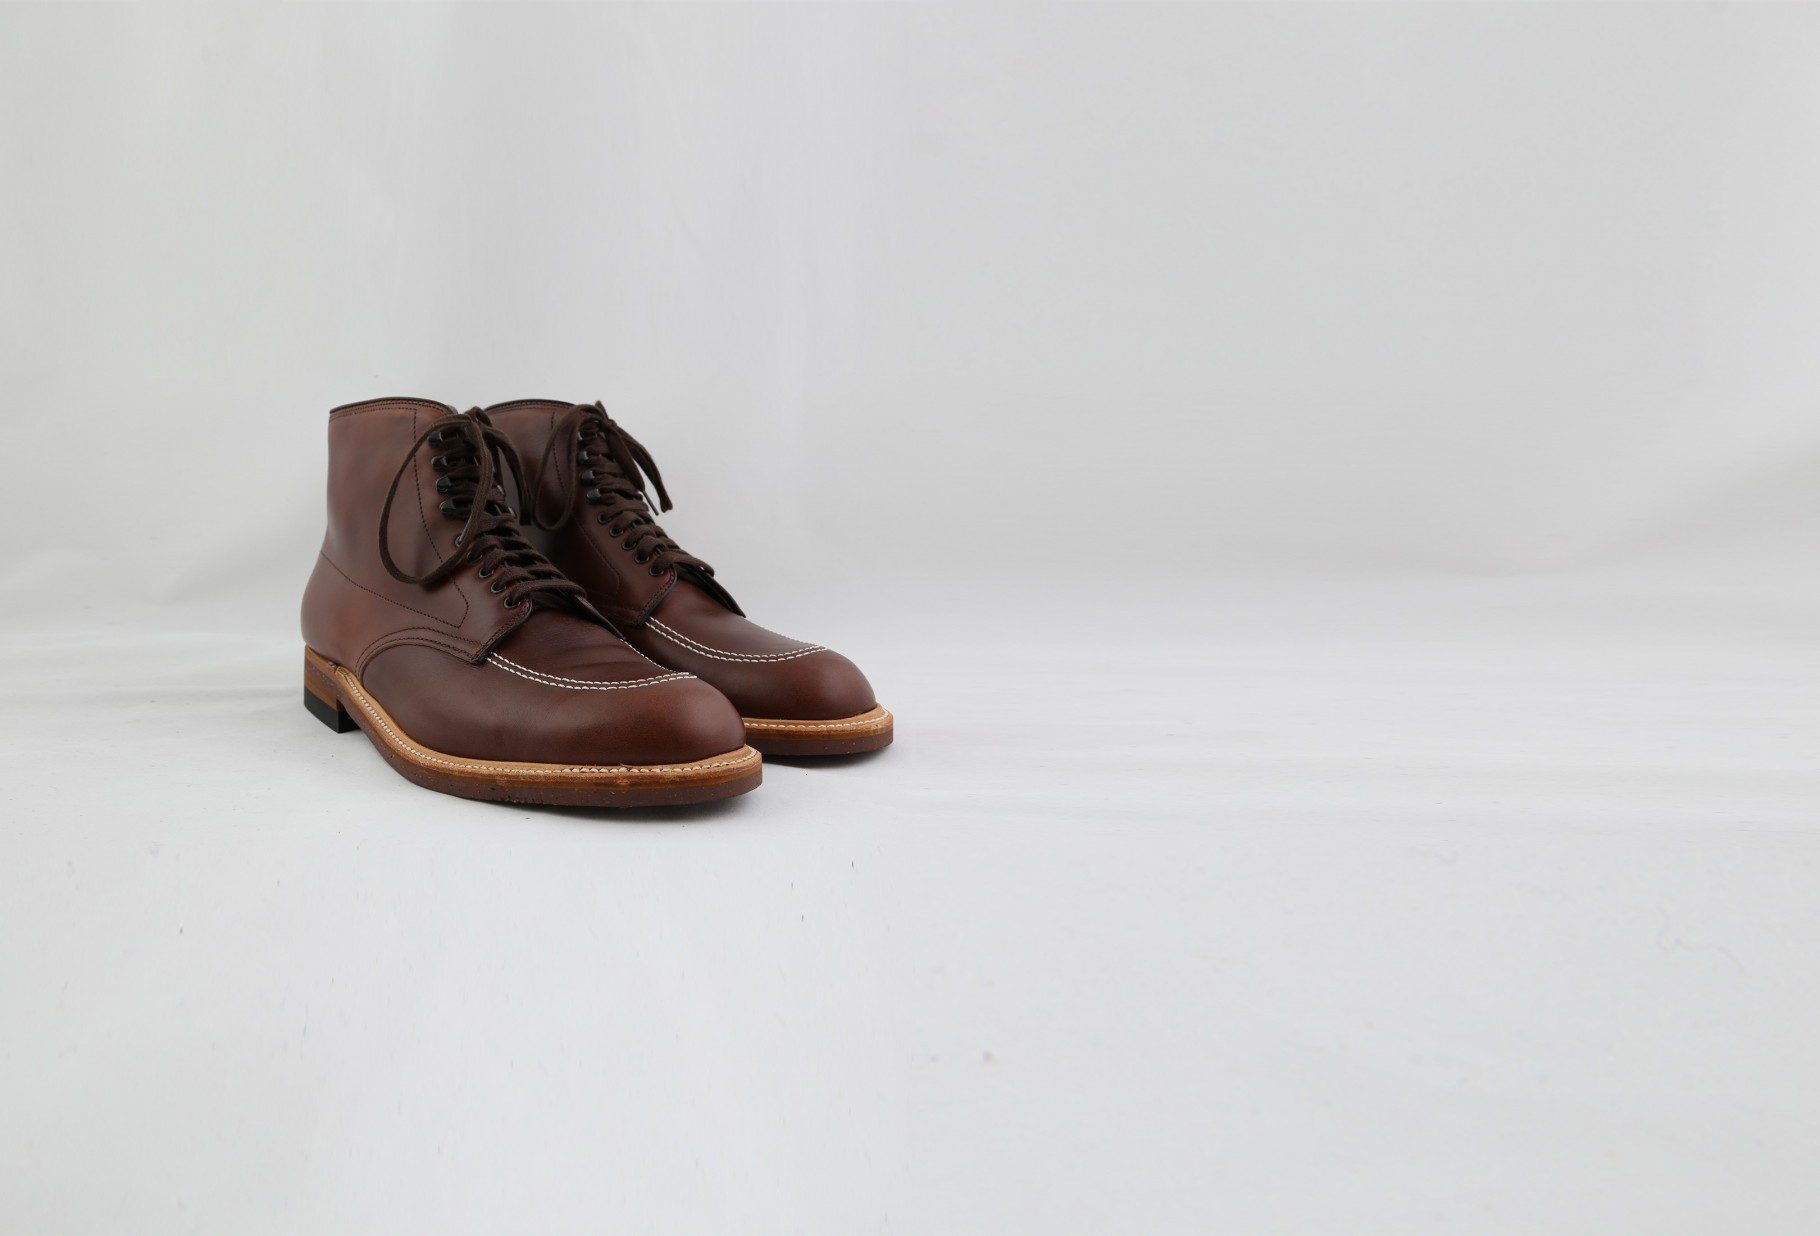 ALDEN SHOE COMPANY / 403 indy boot chromexel Brown